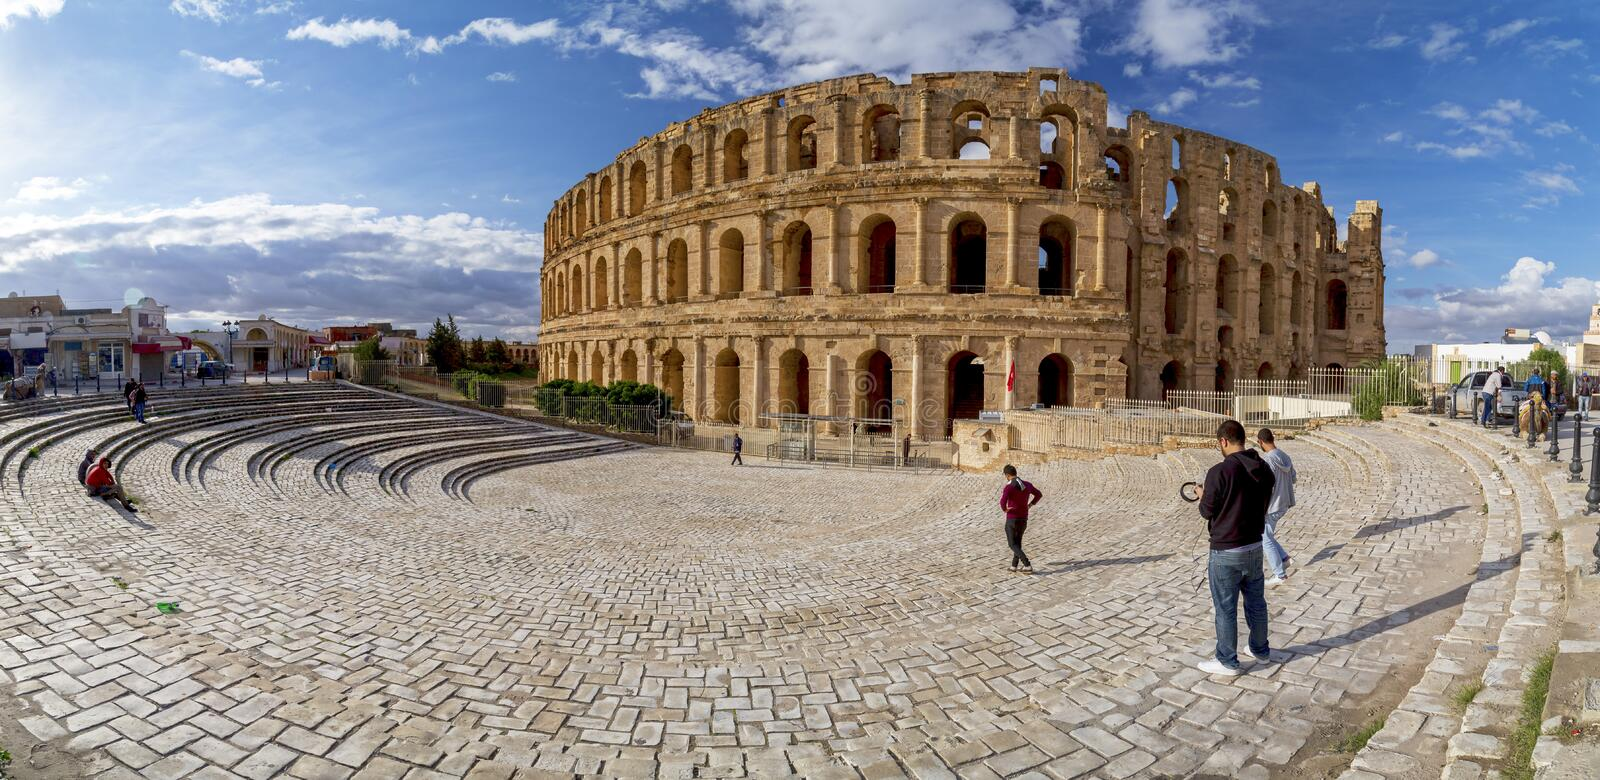 El Jem, Tunisia. El Djem, Tunisia - December 25,2016: The Roman amphitheater of Thysdrus in El Djem or El-Jem, a town in Mahdia governorate of Tunisia.The royalty free stock photography